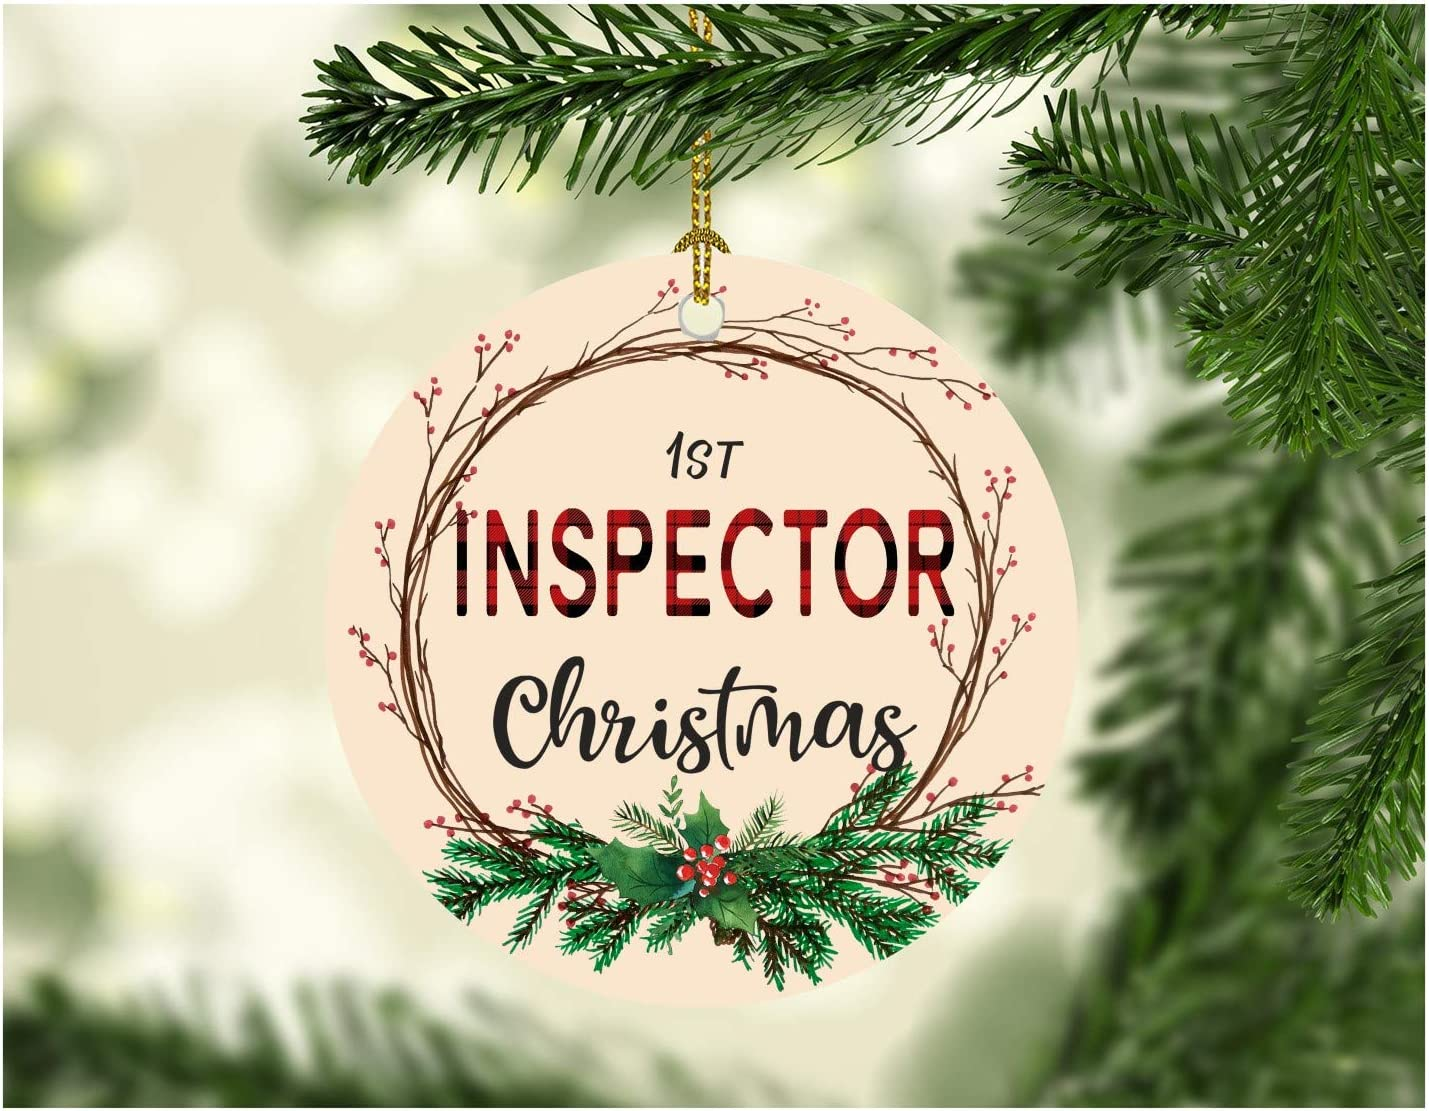 "Christmas Tree Ornament 2020 First Christmas Inspector Decorations Tree Congrats On New Job Good Luck Present Ideas Family Decor for A Holiday Party Funny Xmas MDF Plastic 3"" White"